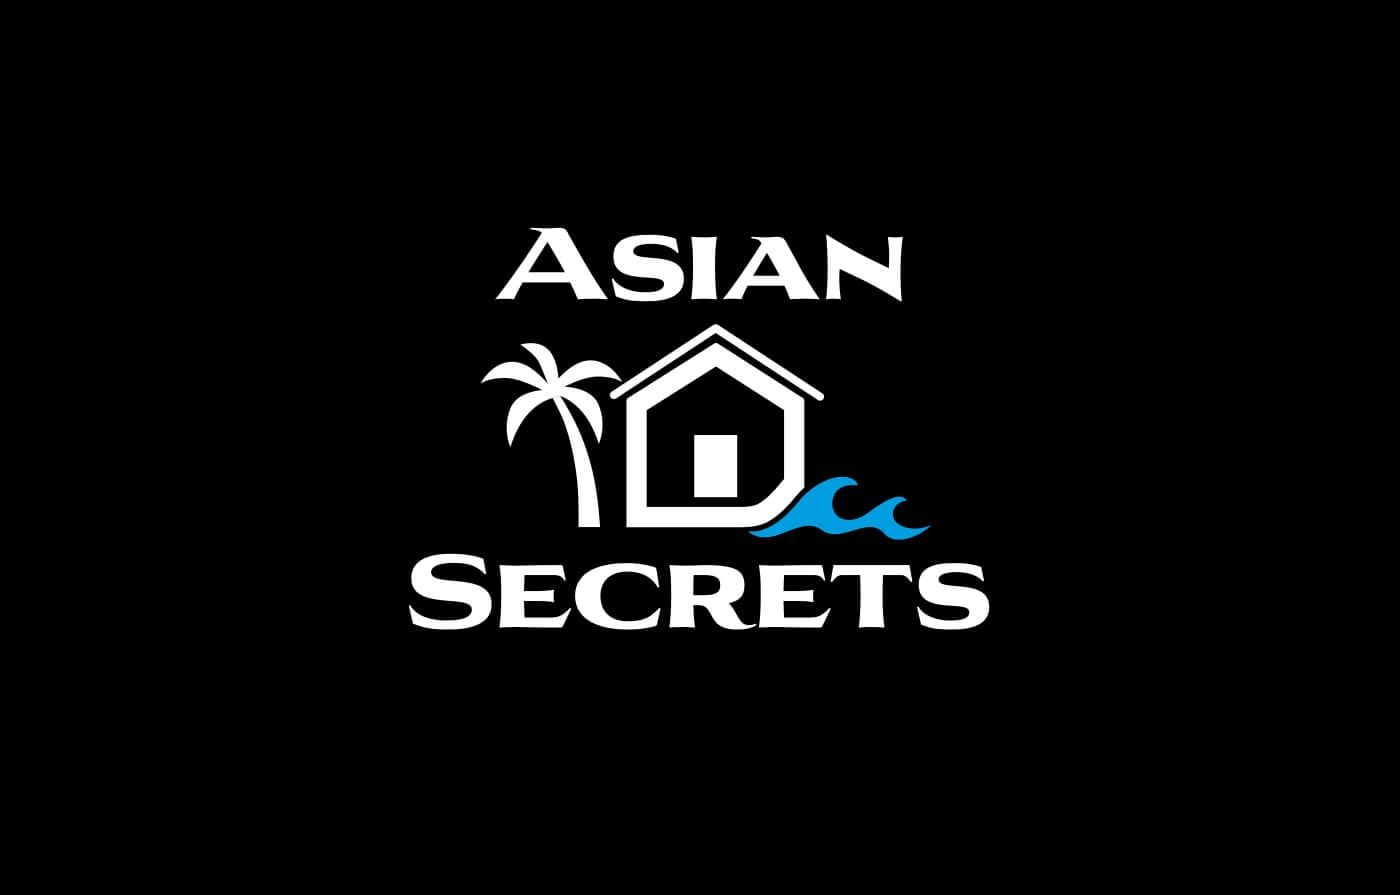 2018 Asian Secrets logo